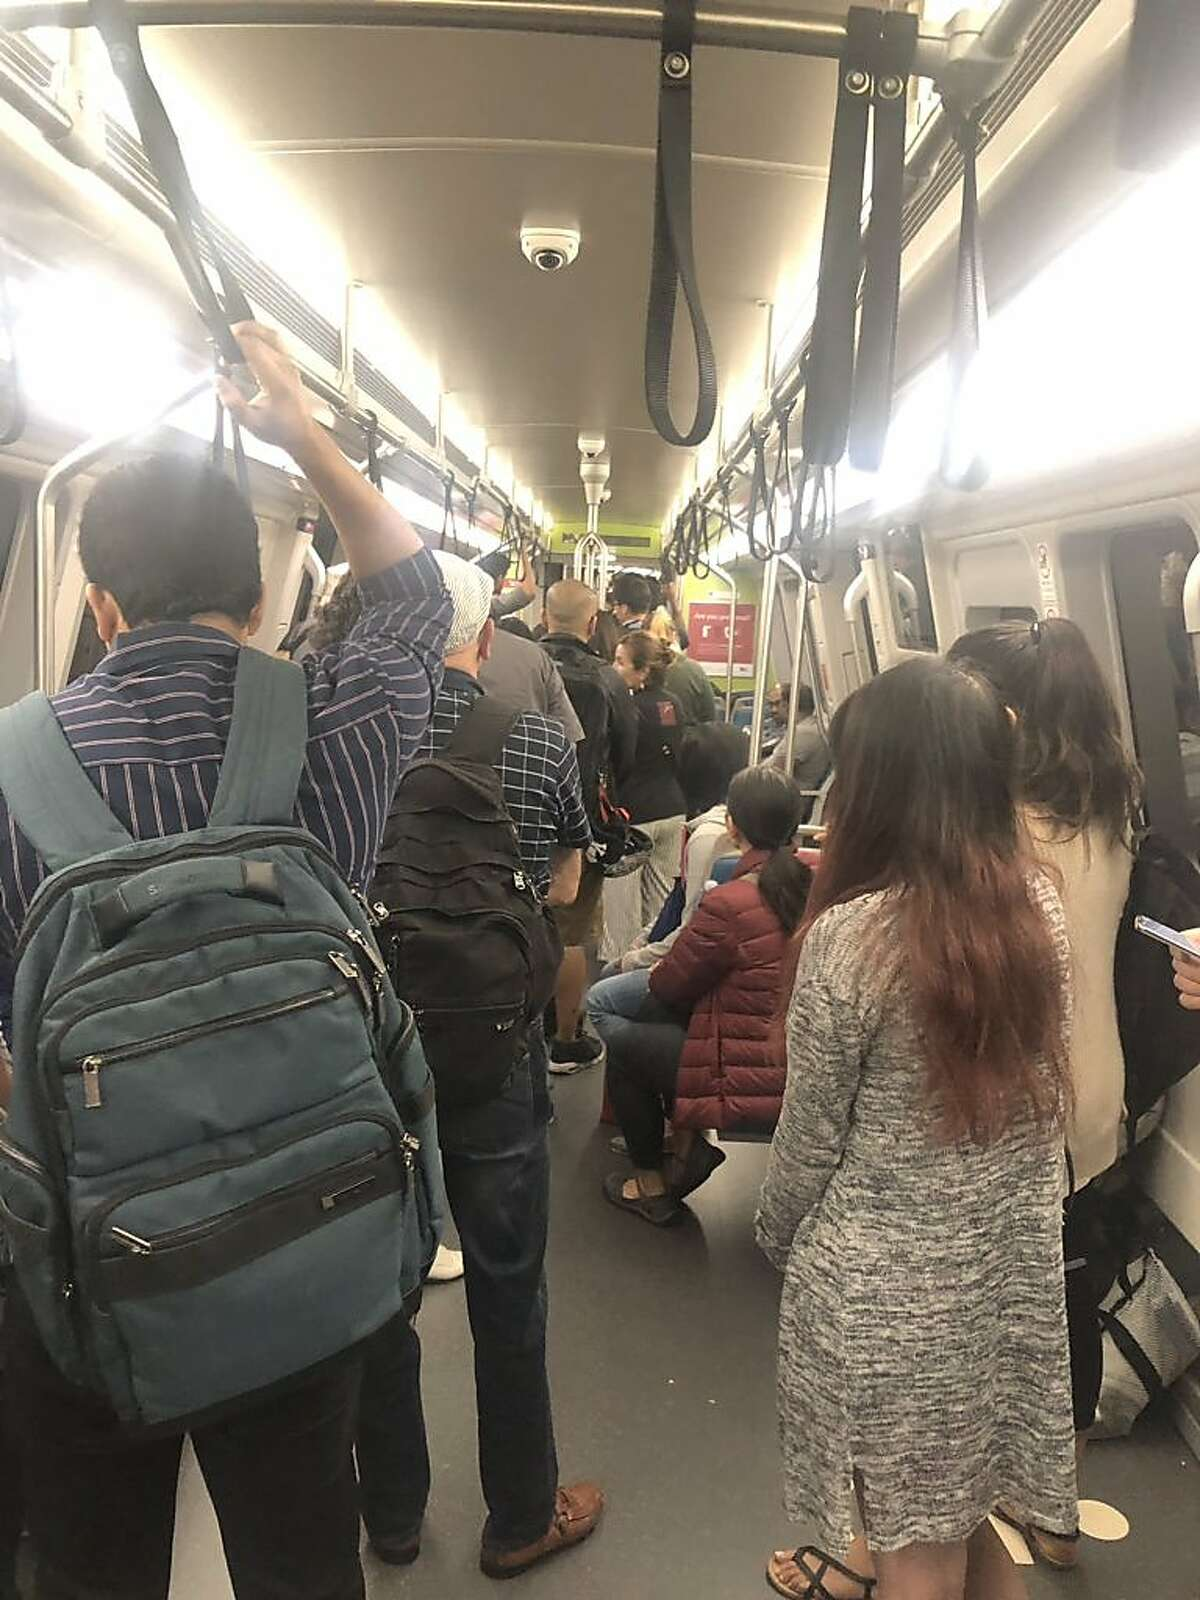 Passengers lined up in their train car before walking through the tunnel to the 12th Street Station after a train stalled Monday, June 25, 2019.